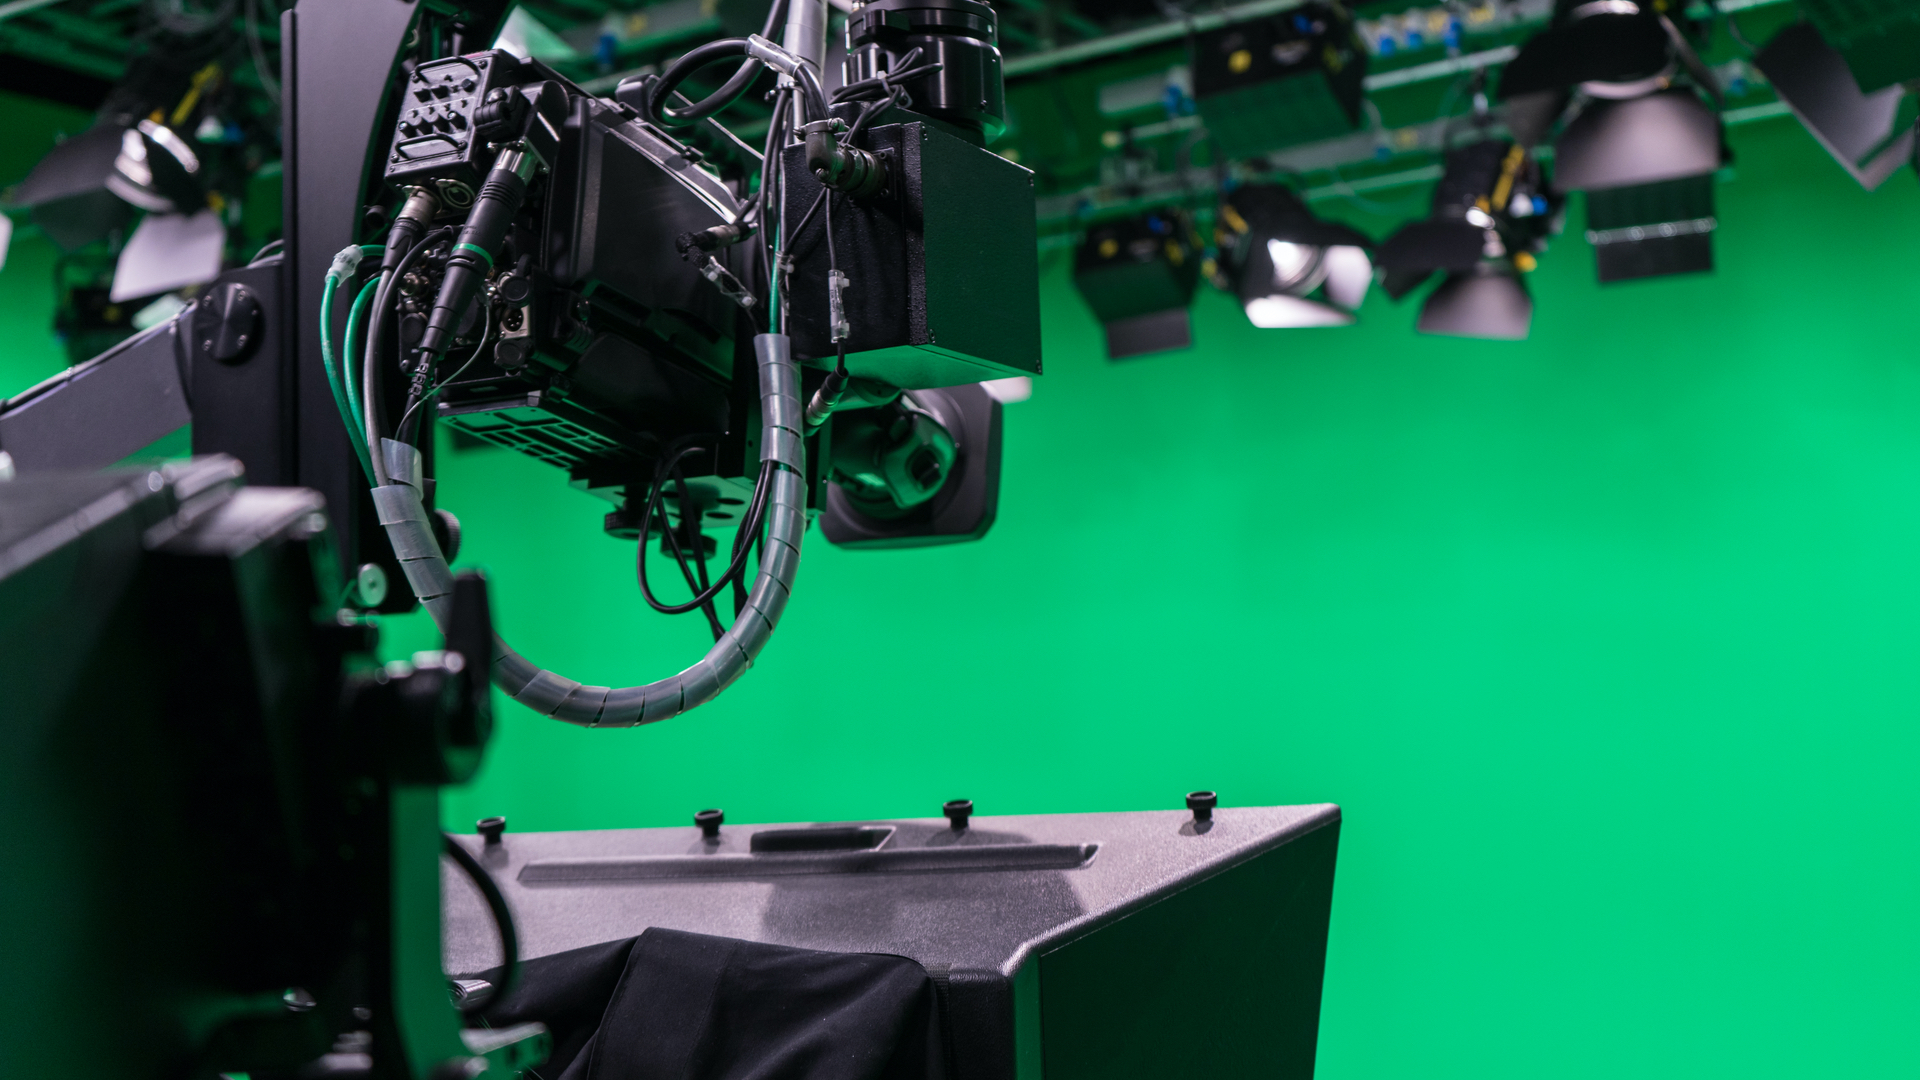 SHH Productions televisiestudio 3 green screen